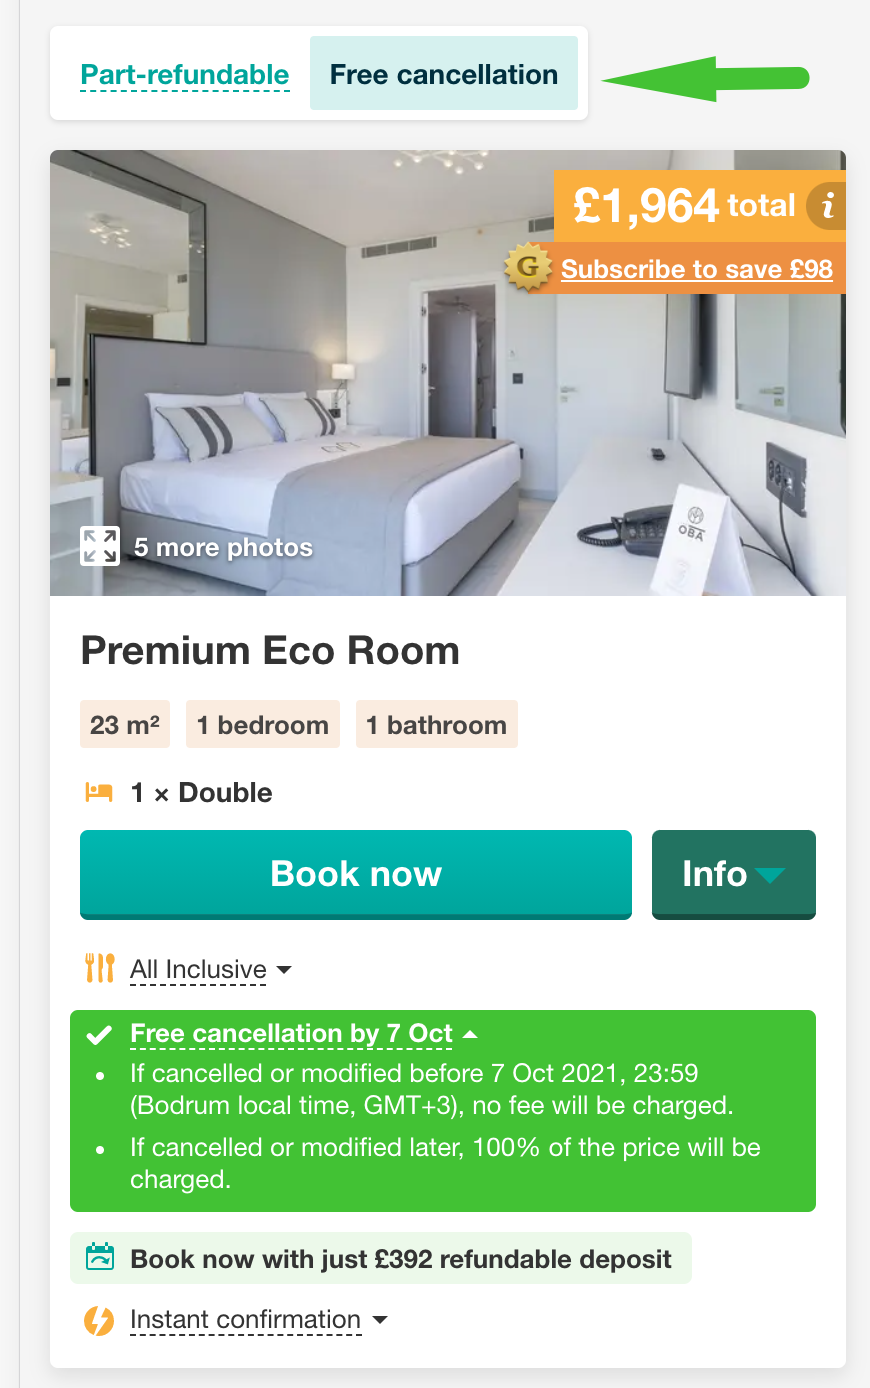 Free cancellation policy